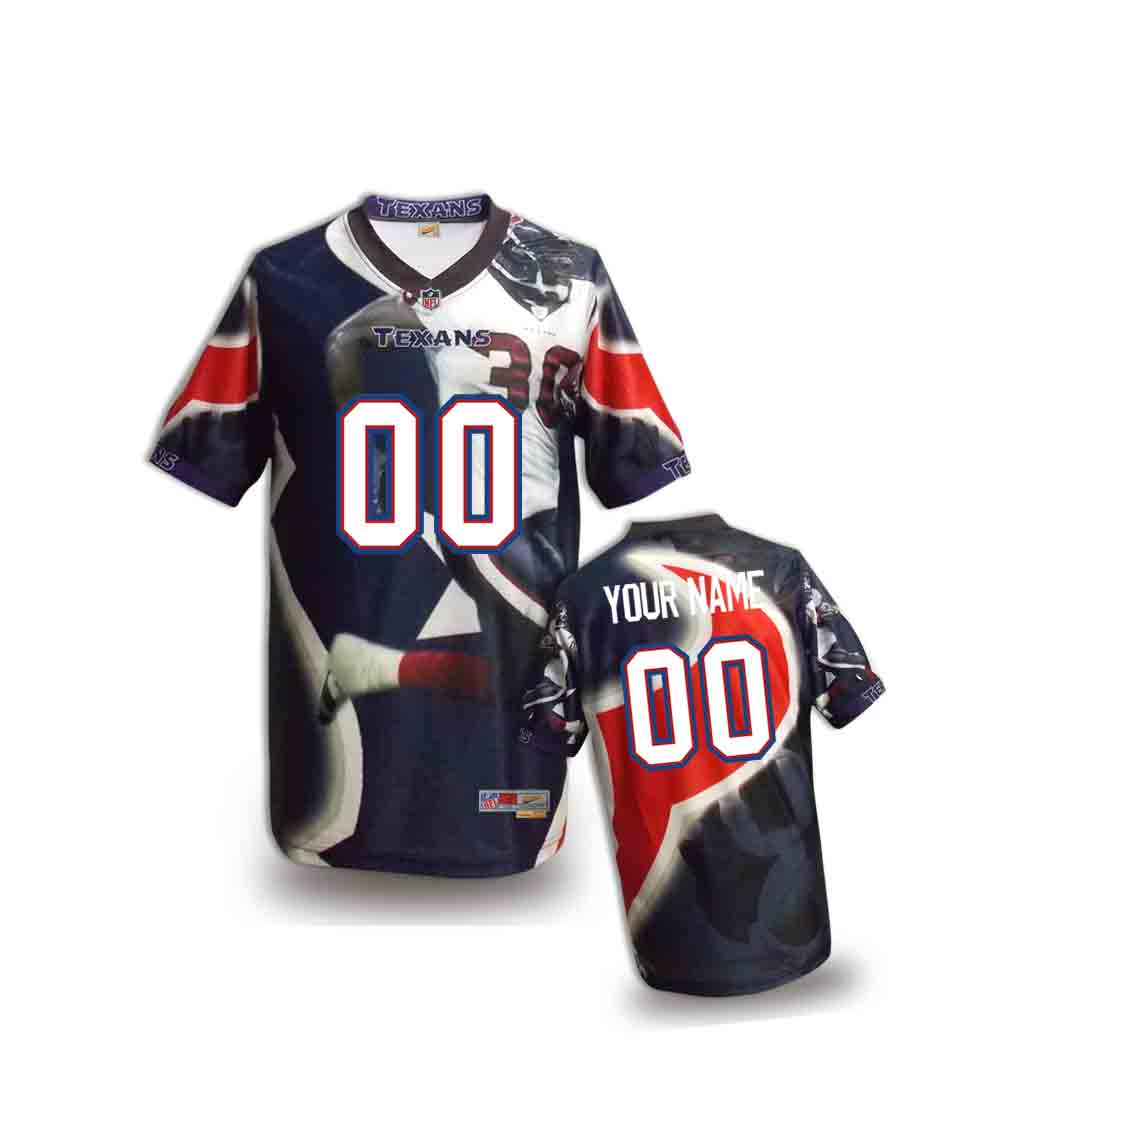 Nike Texans Customized Fashion Stitched Youth Jerseys03